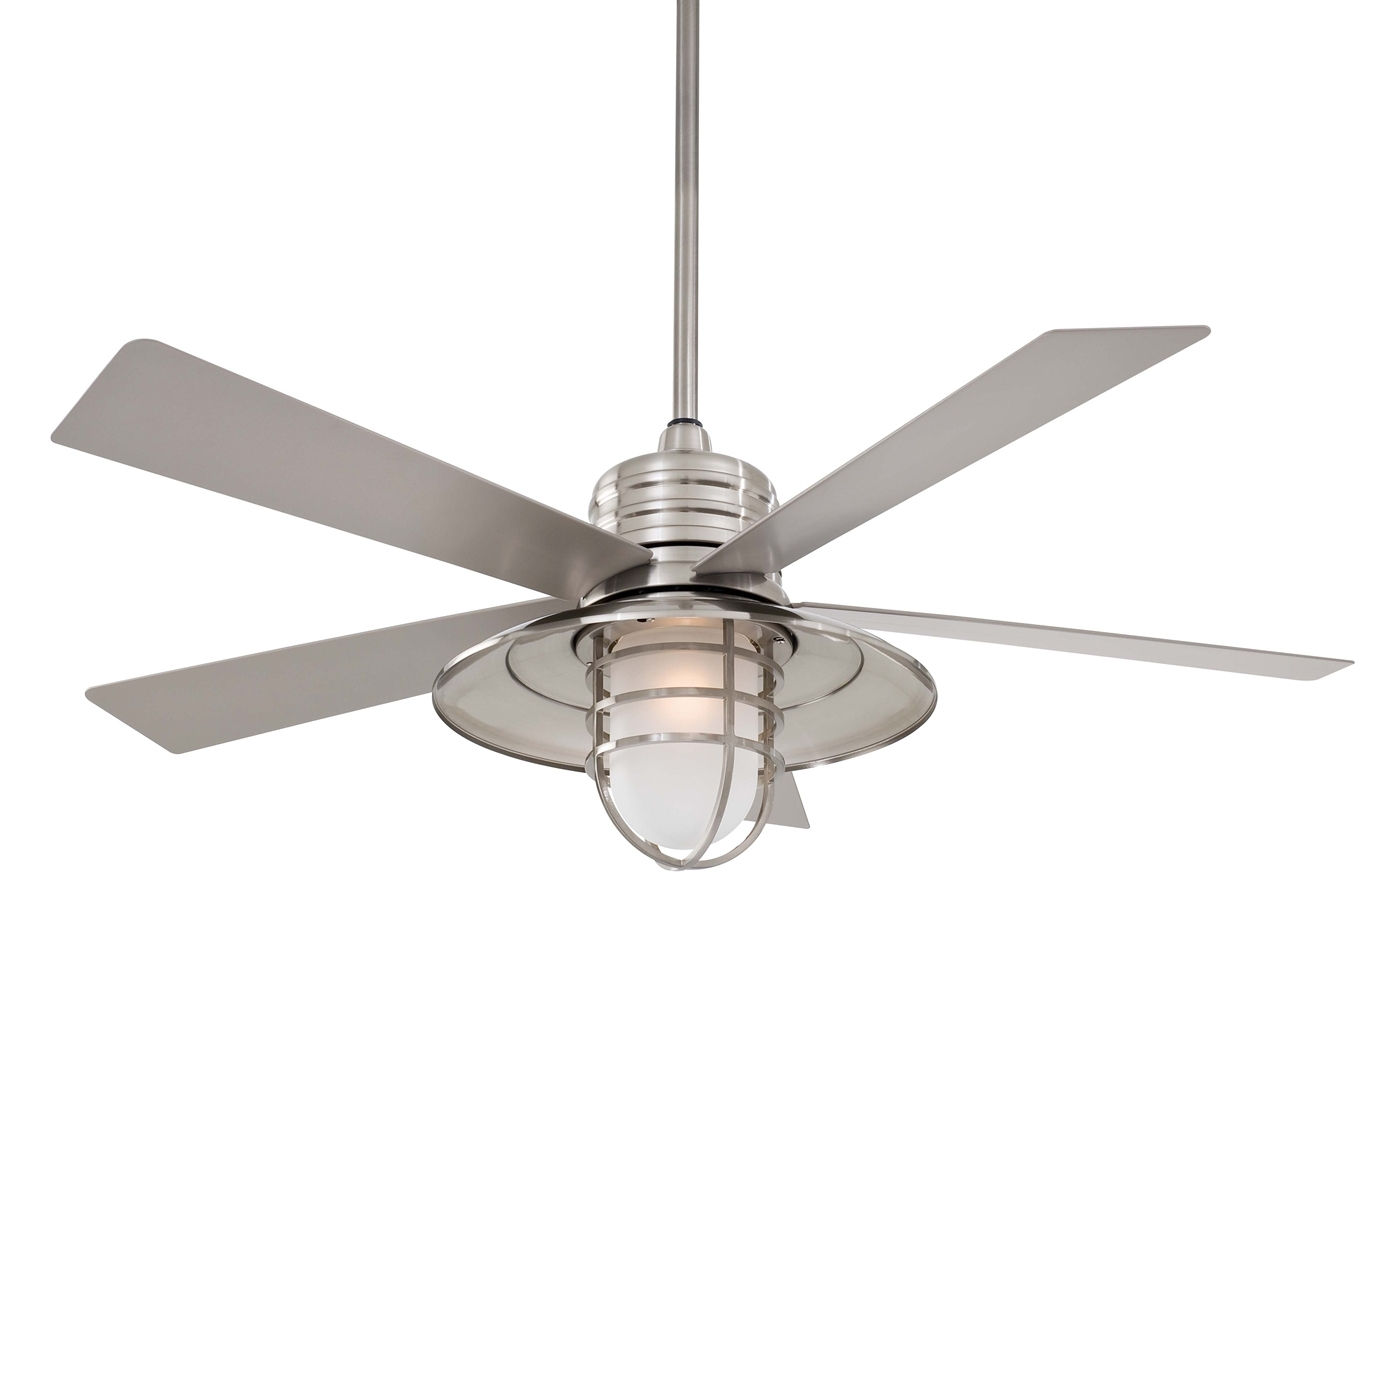 Ceiling Fan: Best Outdoor Ceiling Fans Design Ceiling Fan With Light Within Most Recently Released Rustic Outdoor Ceiling Fans With Lights (Gallery 16 of 20)